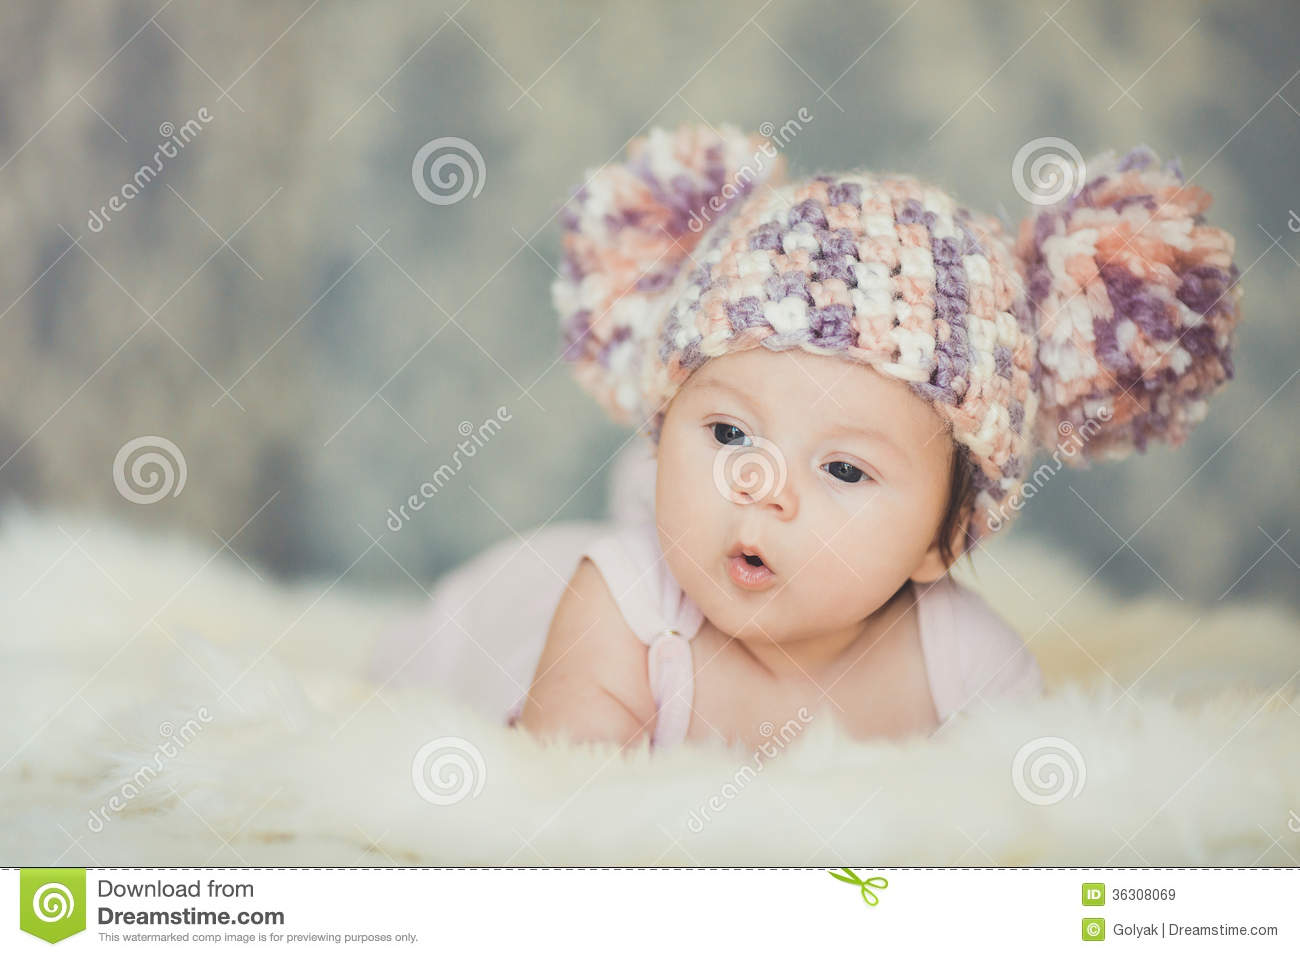 Cute Newborn Baby Girl In Knitted Cap With Bubonic Royalty